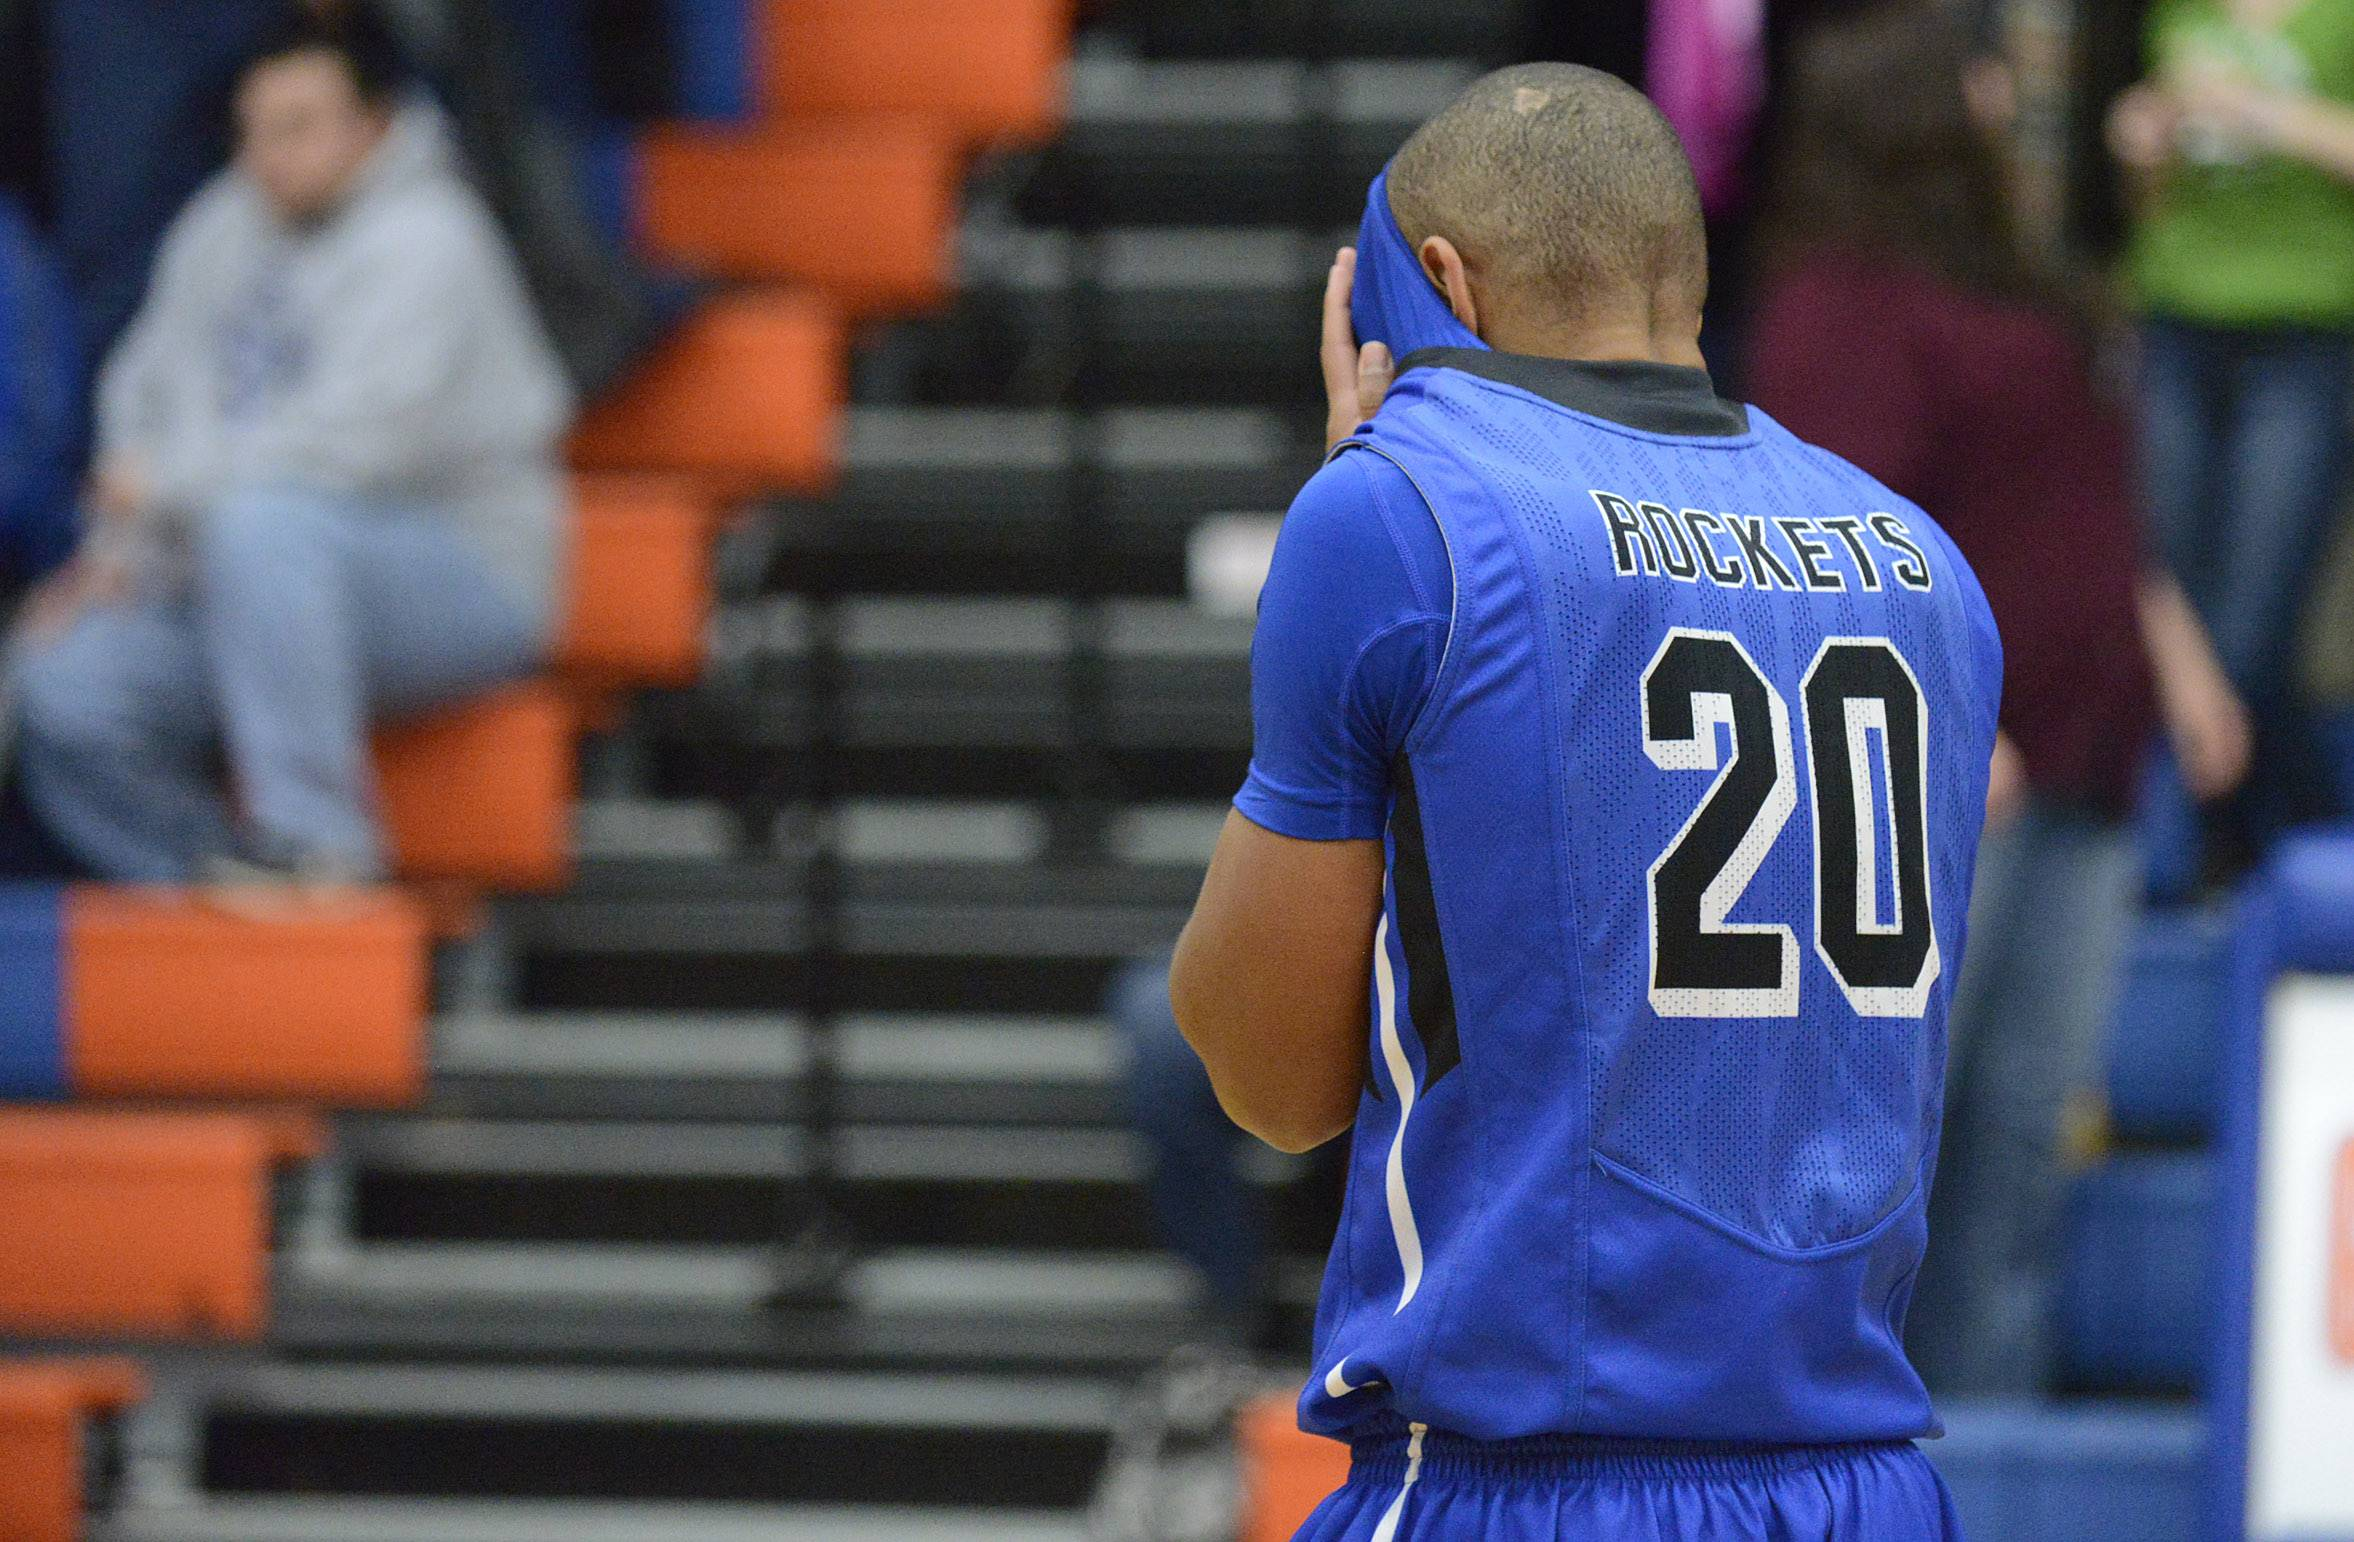 Burlington Central's Reed Hunnicutt walks off the court after the Rockets' loss to Wheaton Academy .